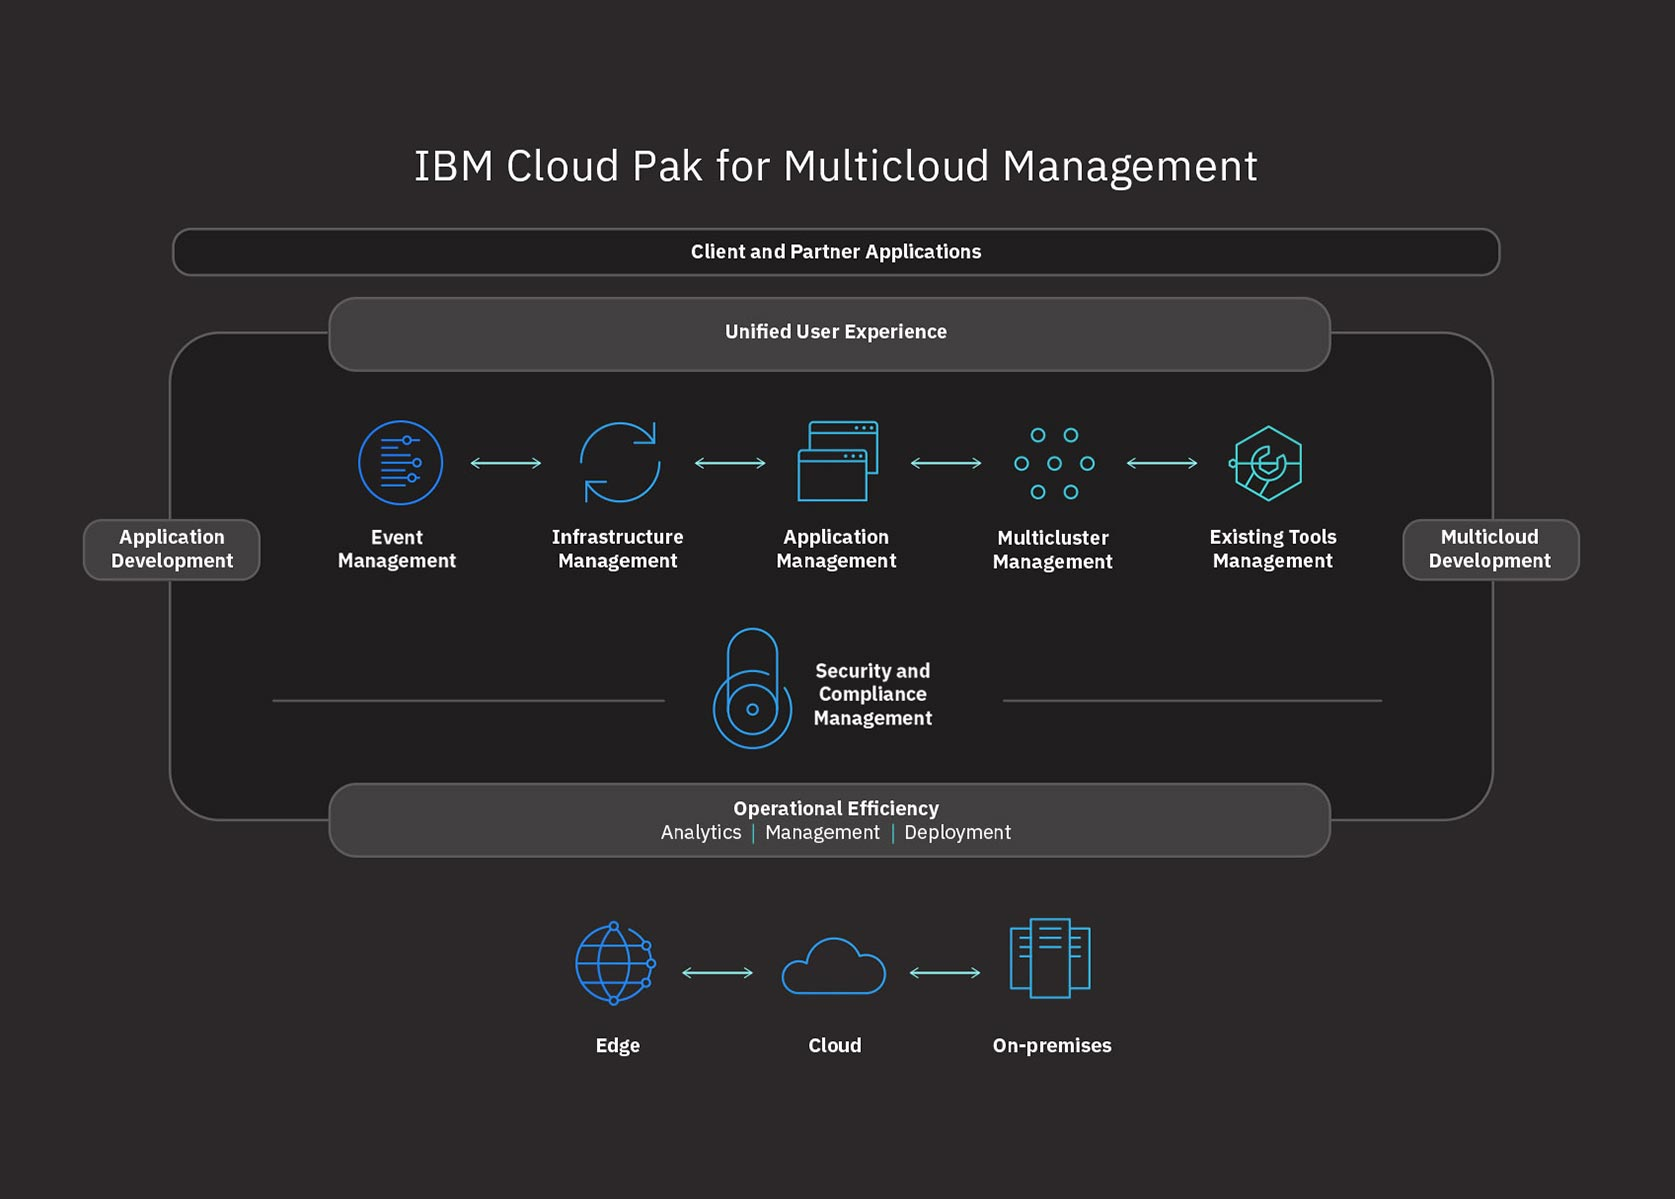 IBM Cloud Pak for Multicloud Management offers consistent application delivery